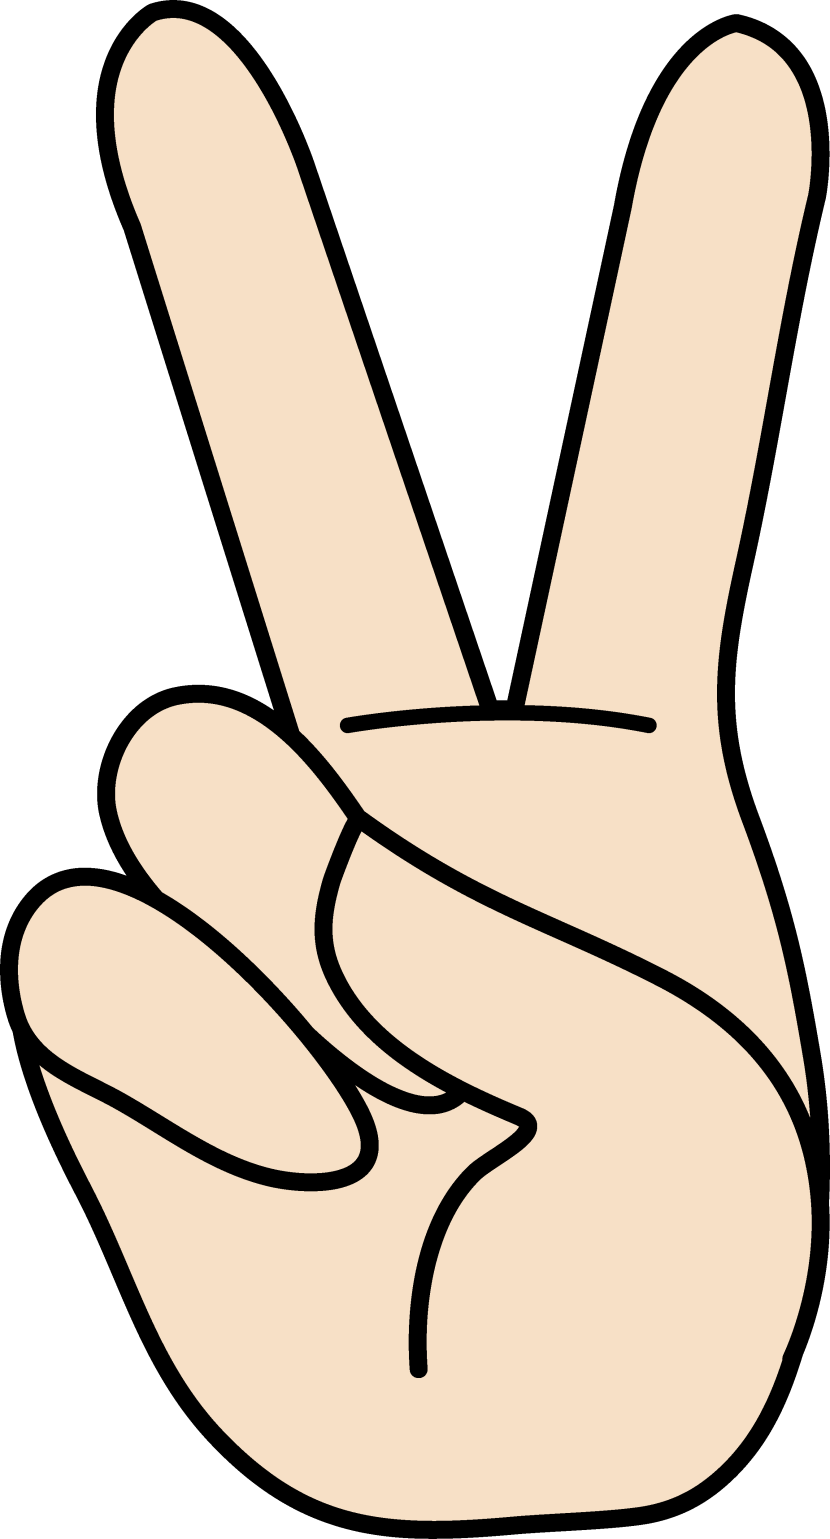 Peace sign clip art 3.